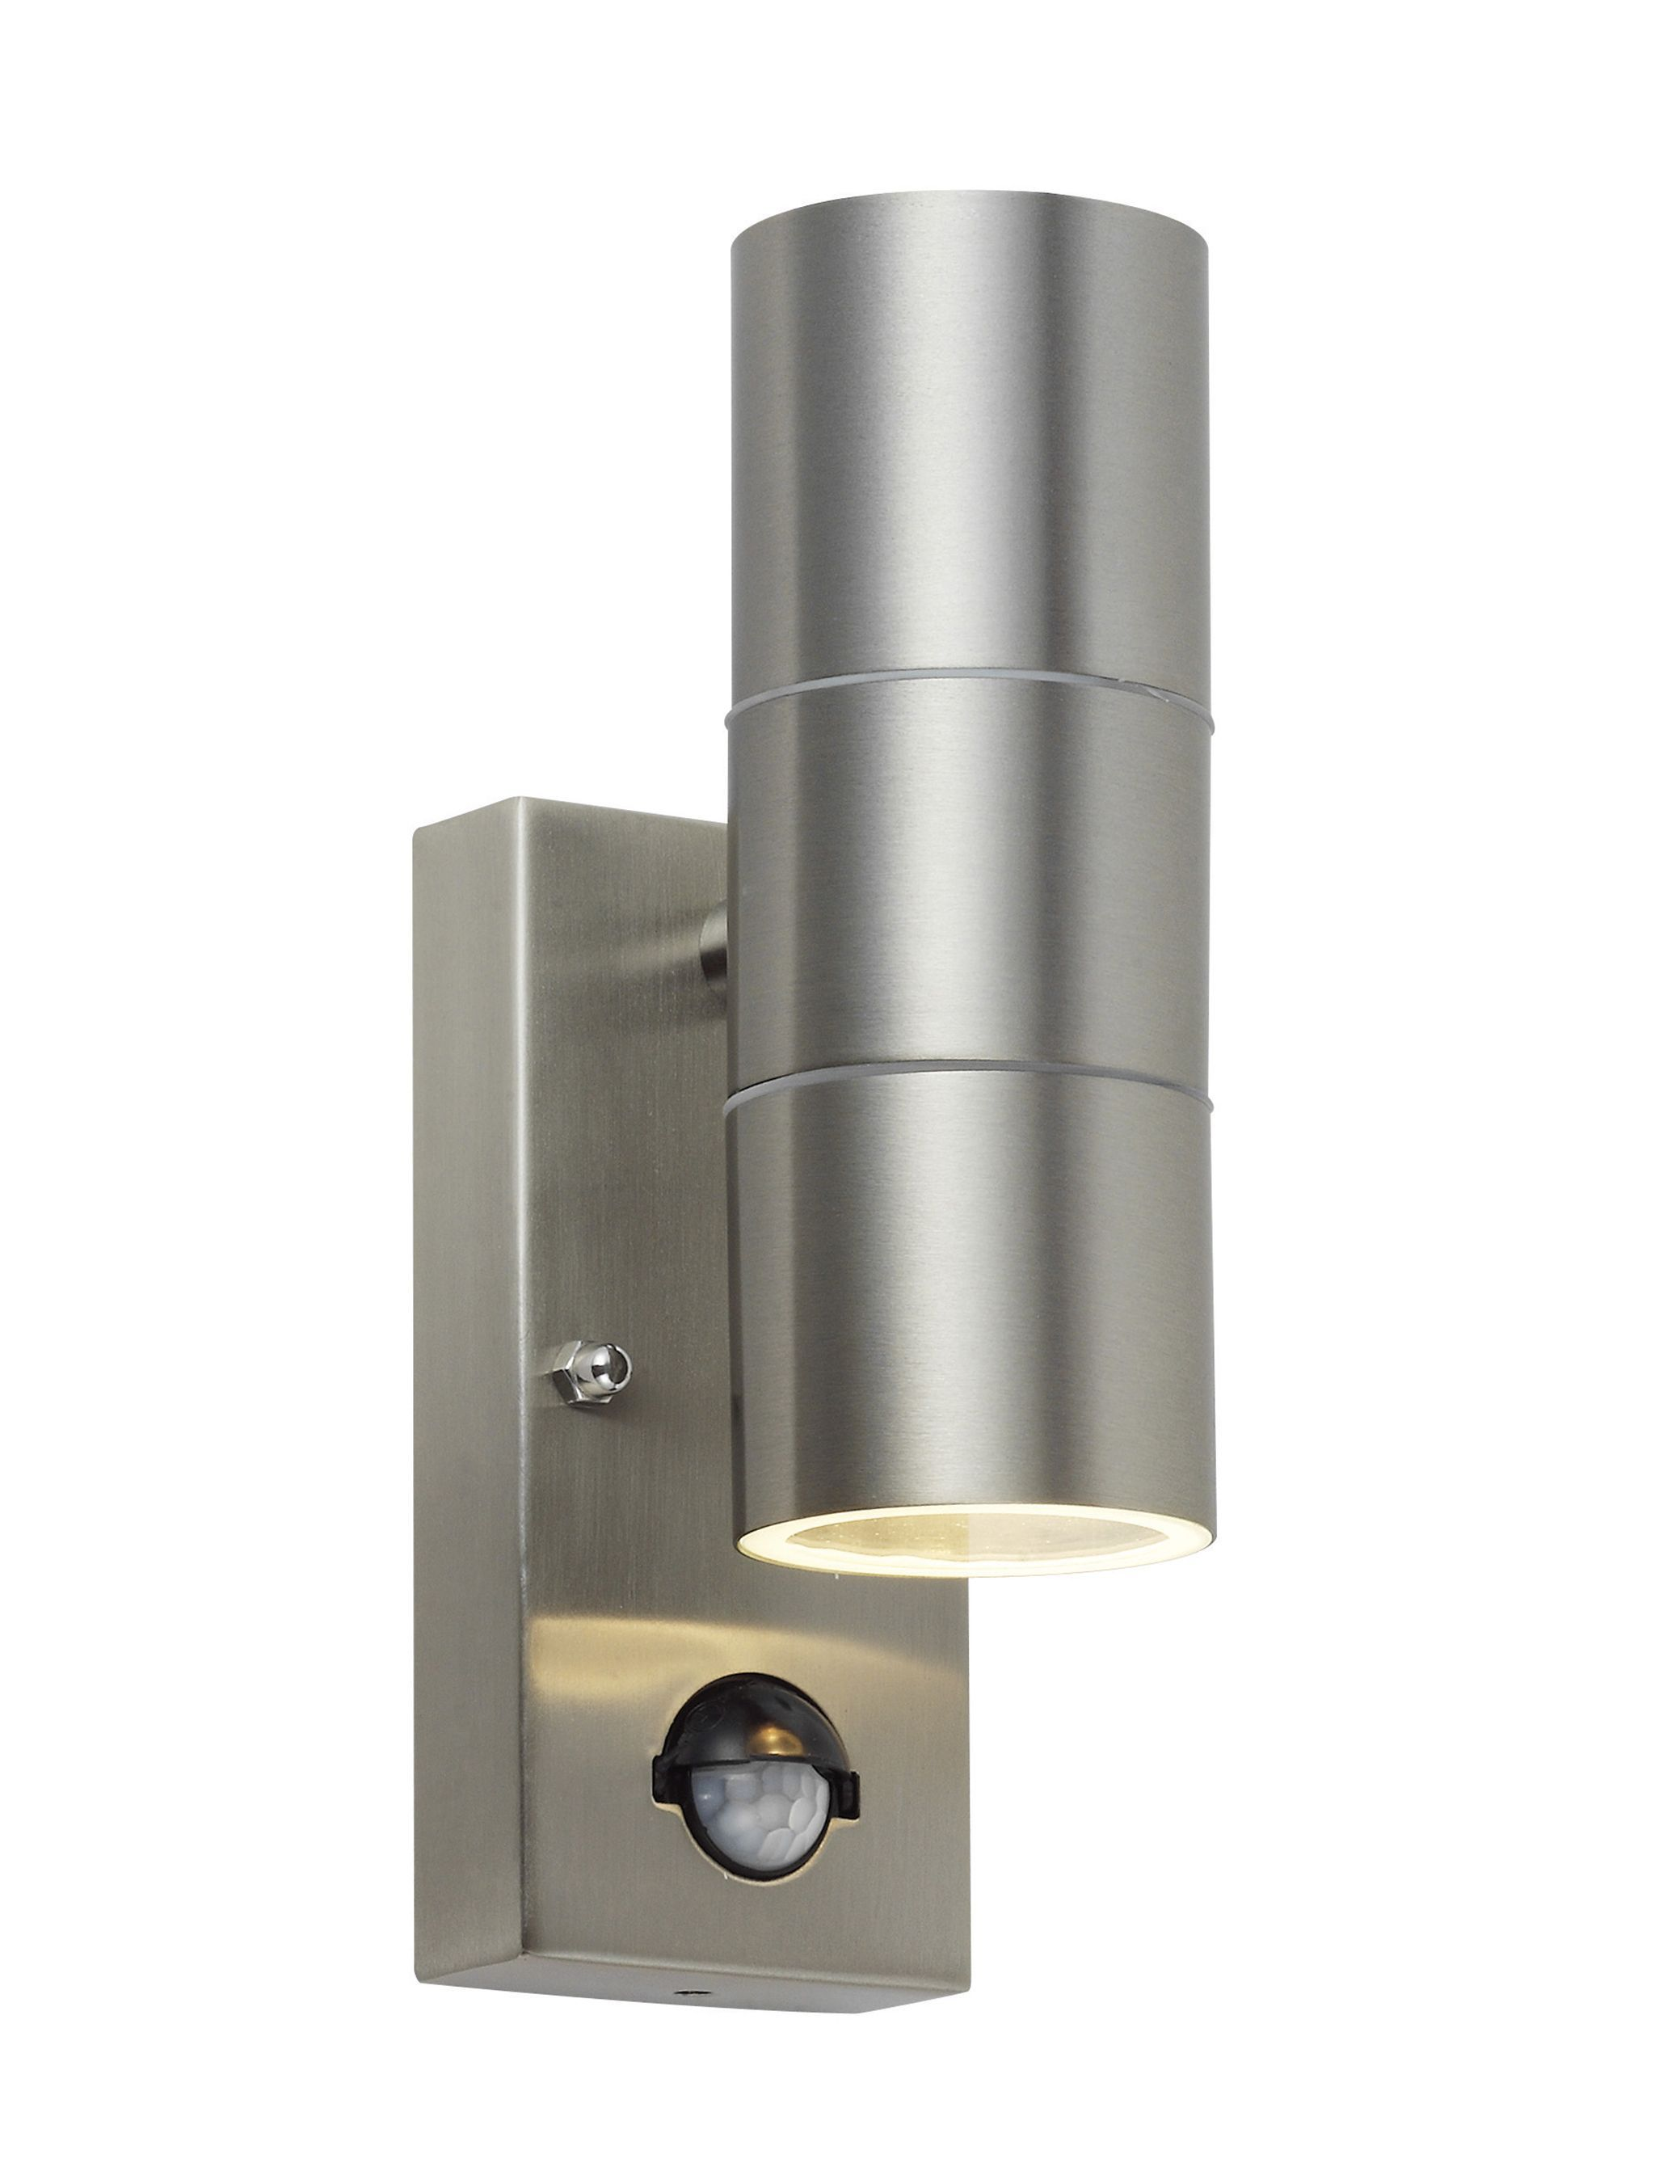 Blooma somnus 35w mains powered external pir wall light for Housse blooma